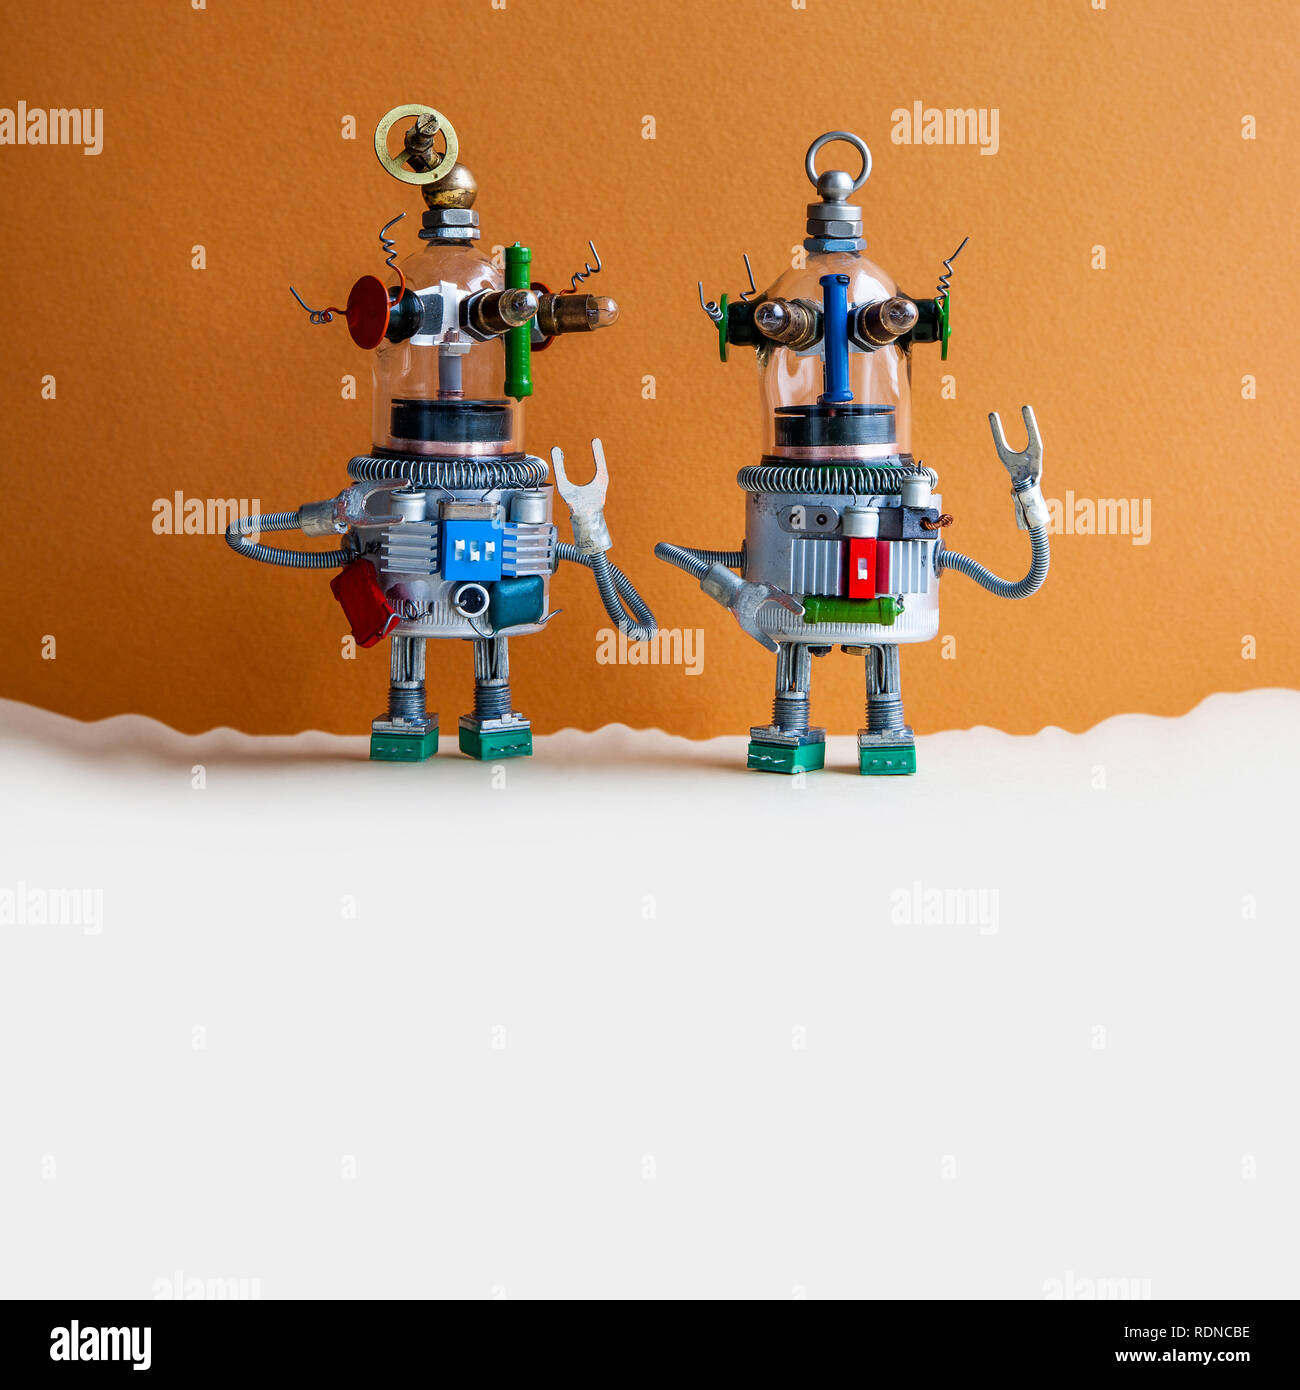 Two glass head ufo robots on brown beige background. Futuristic robot humanoid toys with raised hands. Copy space - Stock Image